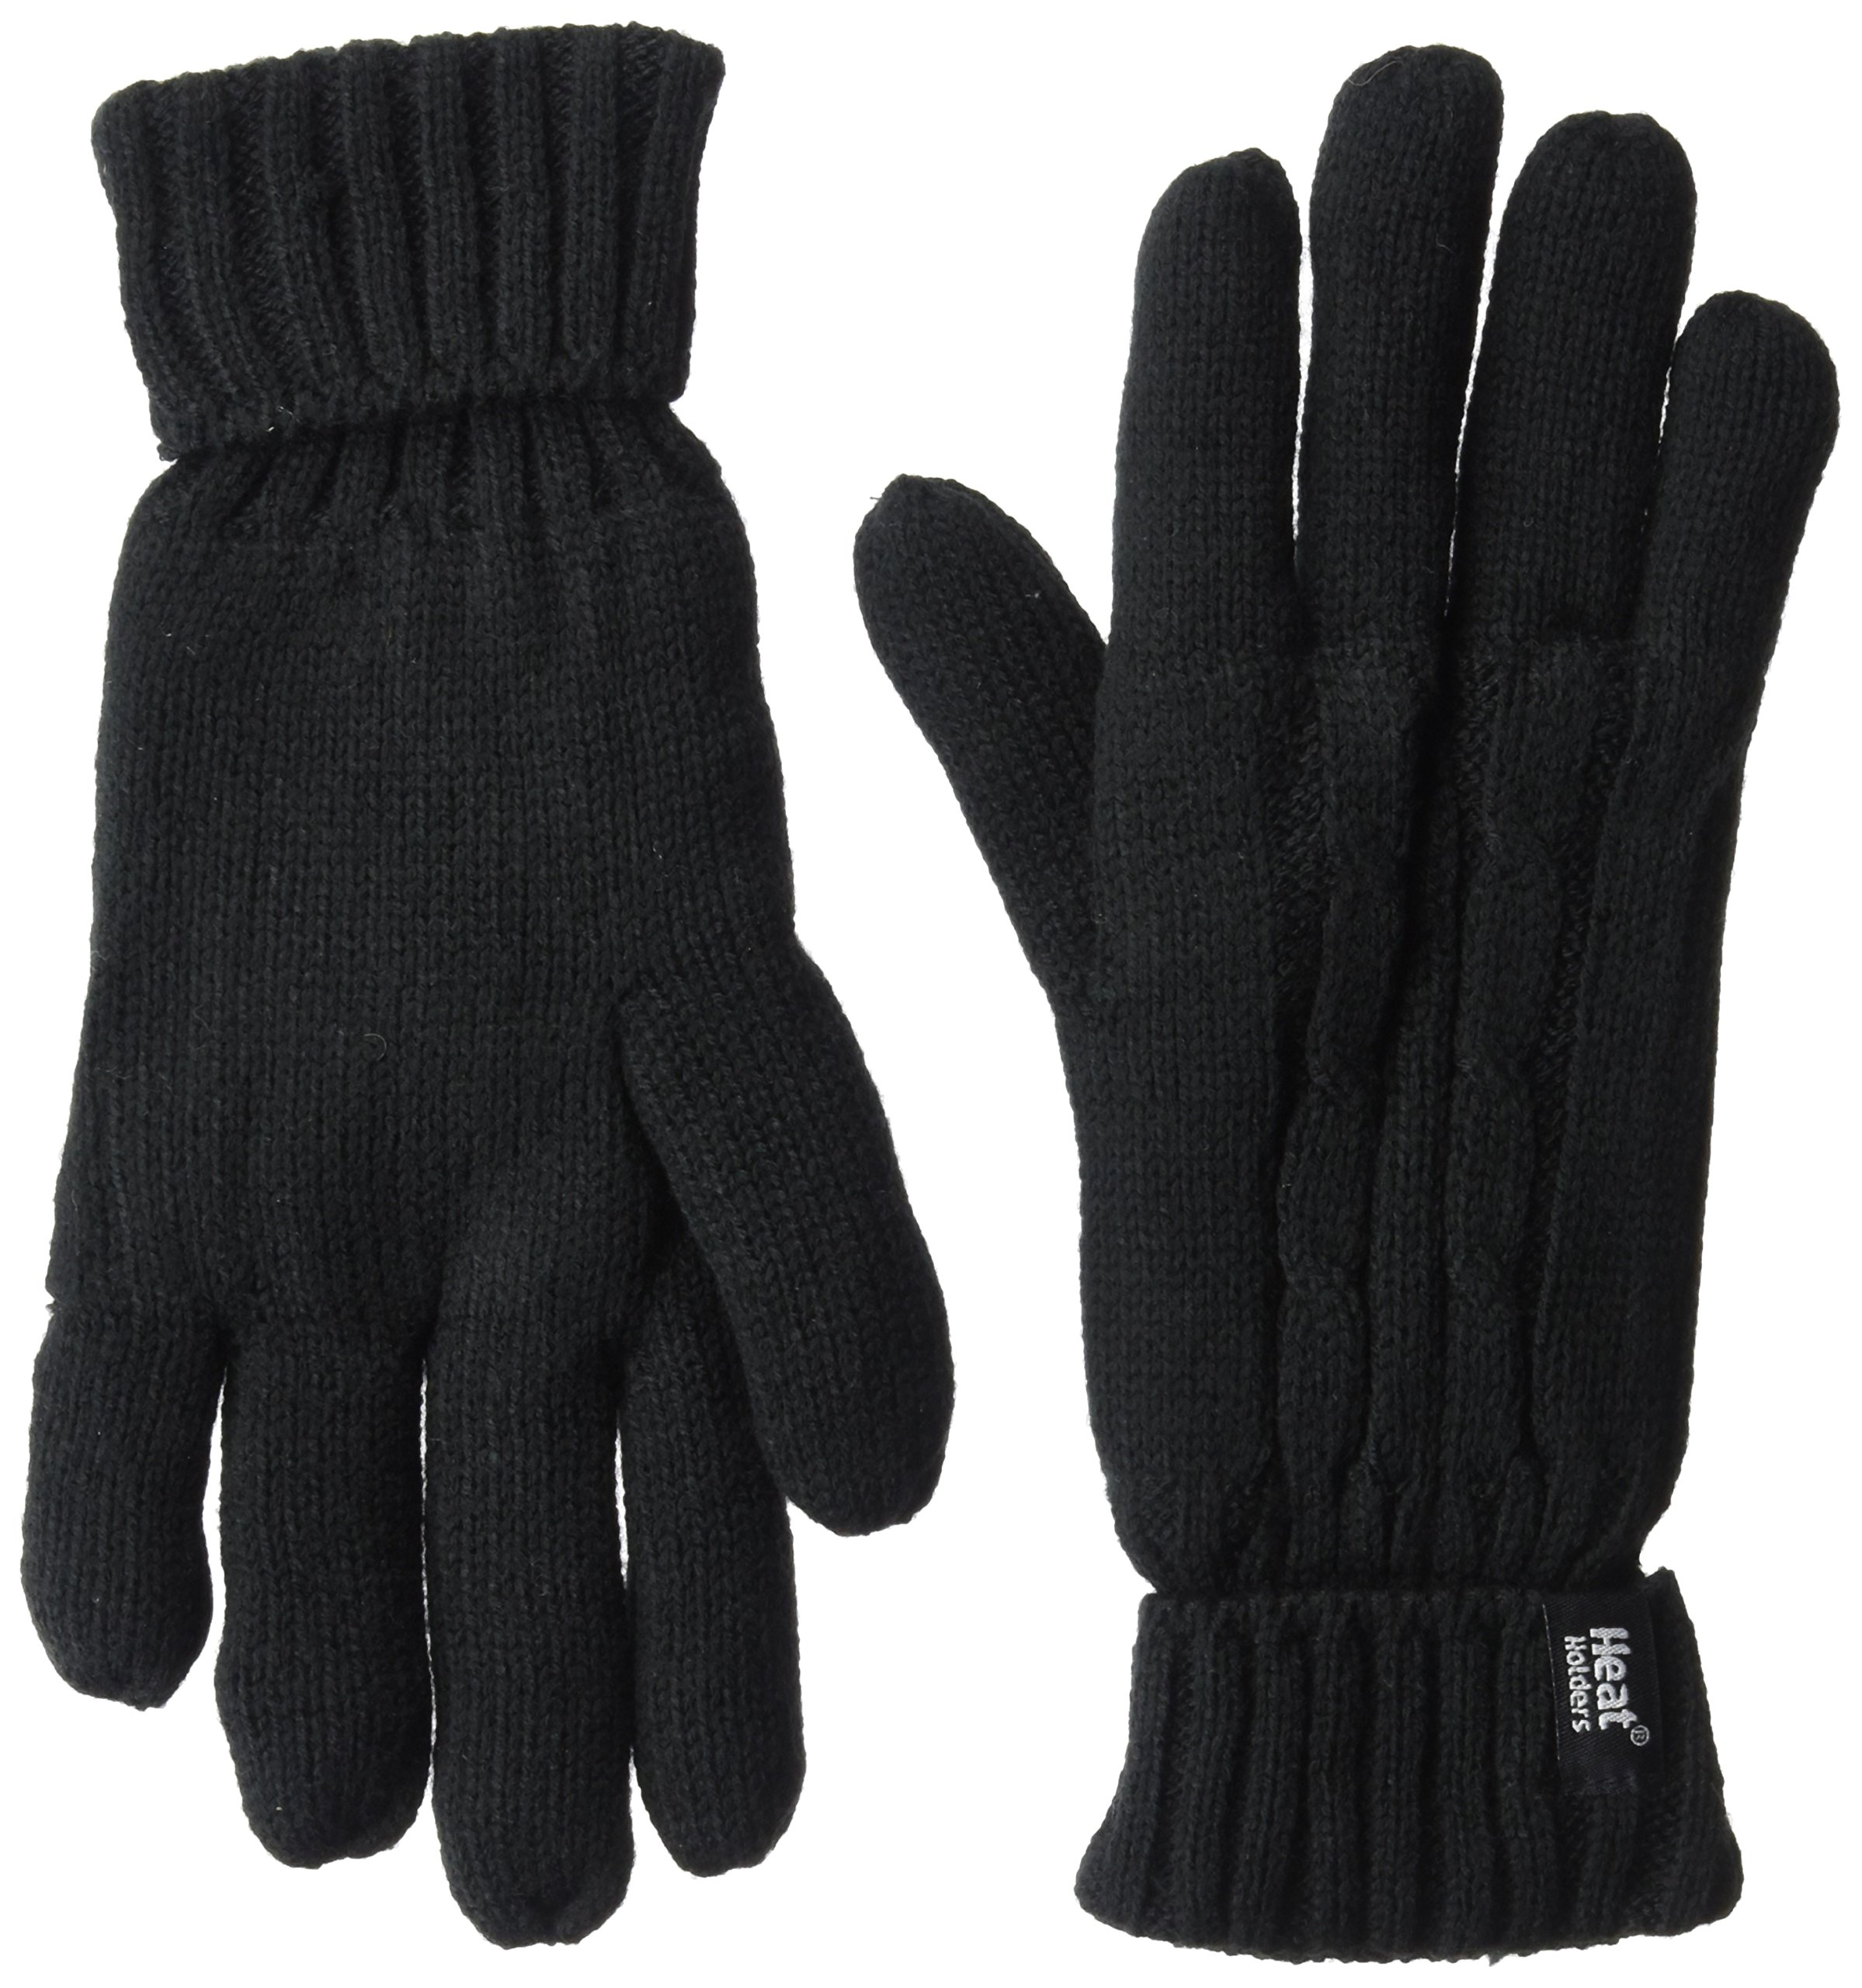 Heat Holders Women's Gloves, Black, Small/Medium